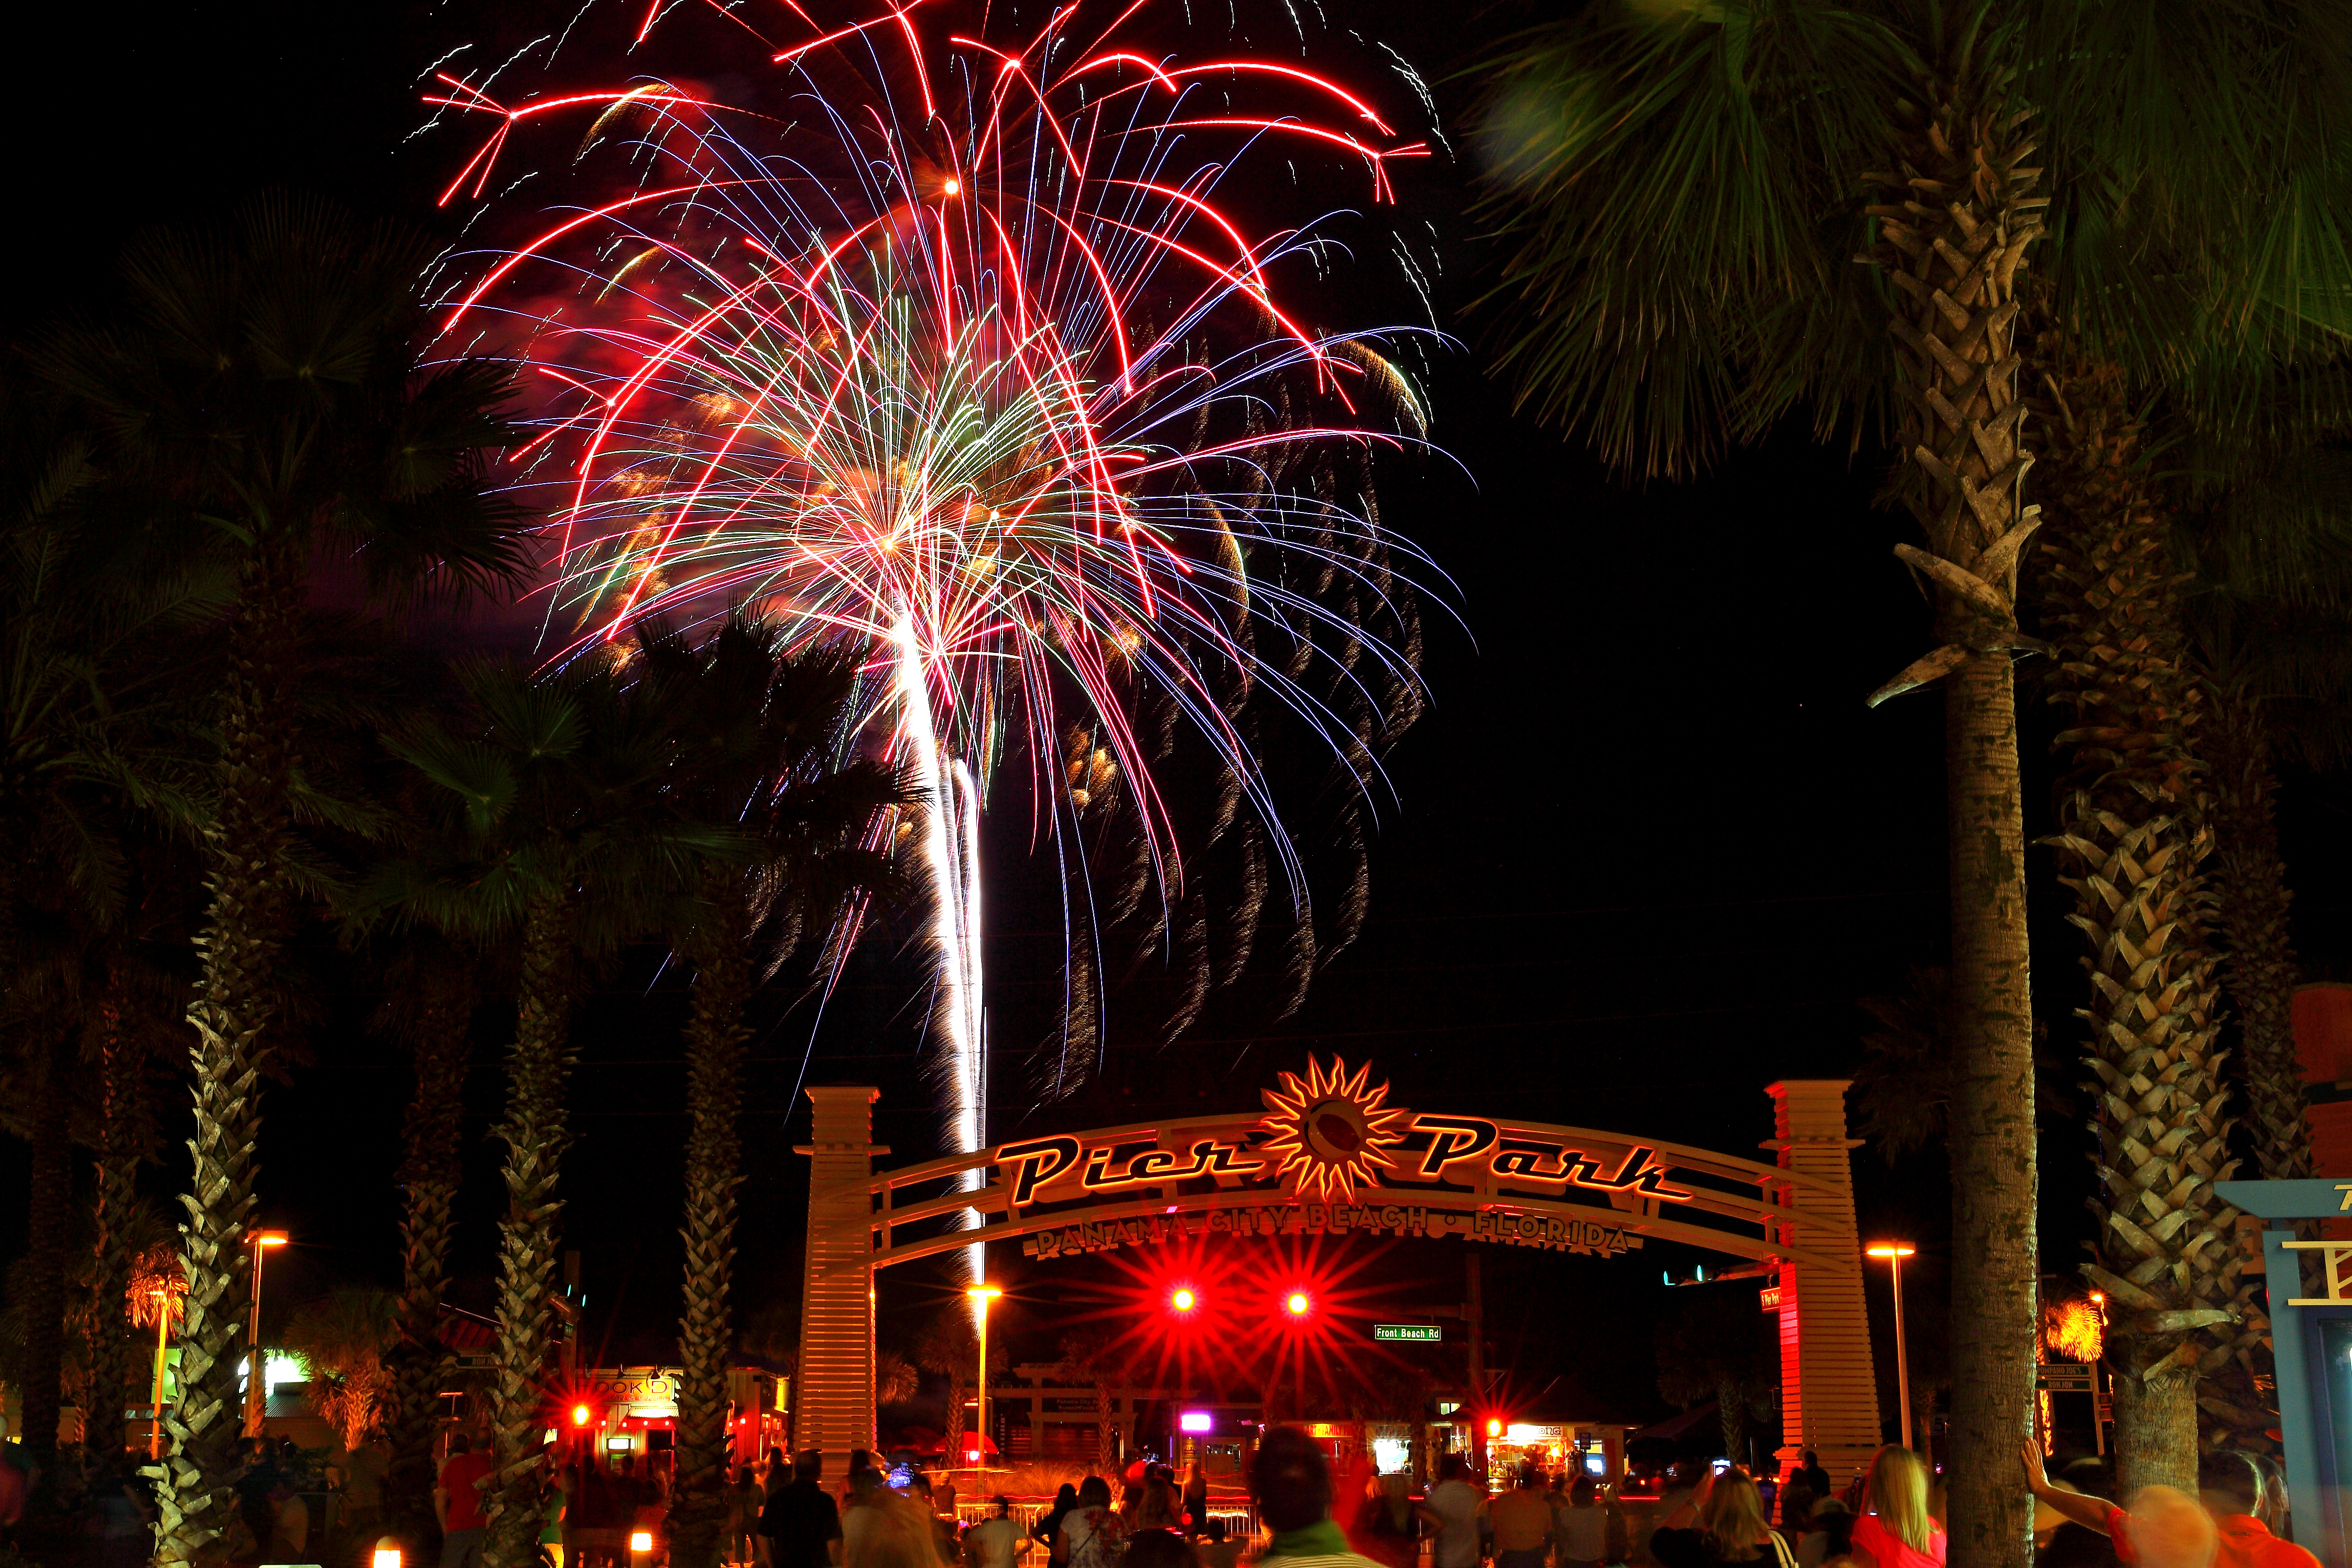 Real  Fun  Fourth  | Celebrate 4th of July in Panama City Beach